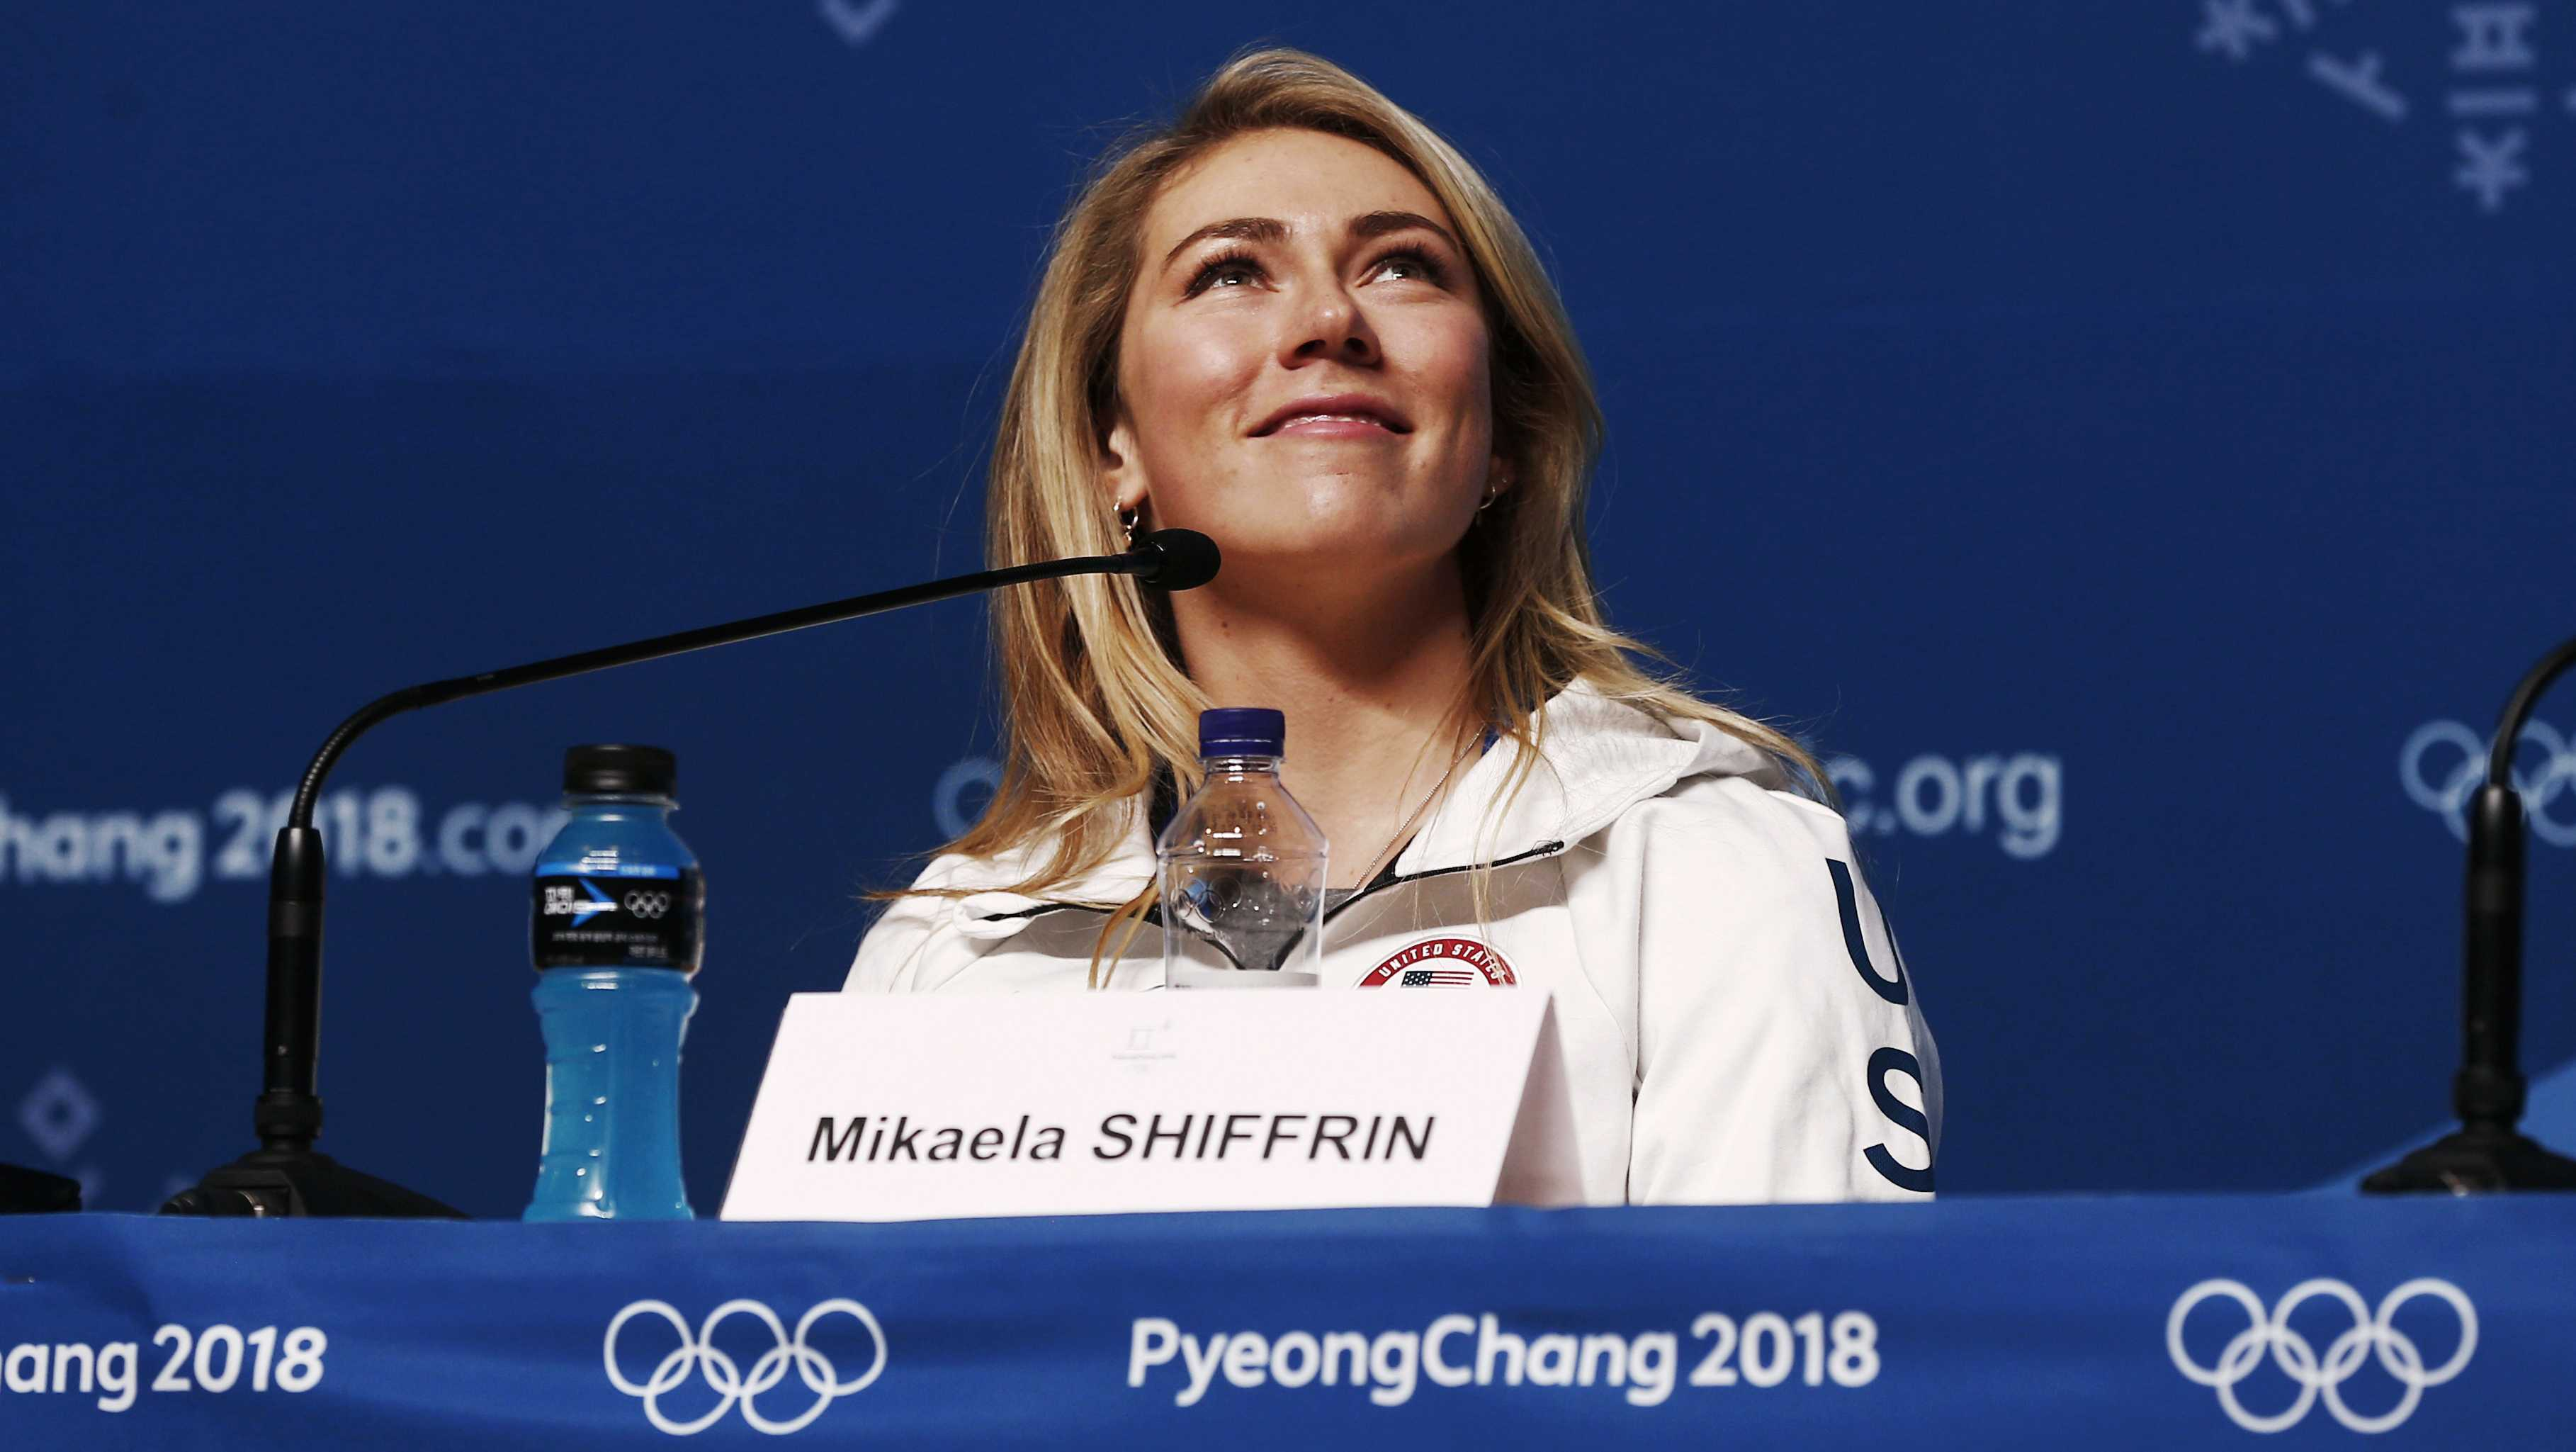 Alpine skier Mikaela Shiffrin, of the United States, speaks during a news conference at the 2018 Winter Olympics in Pyeongchang, South Korea, Saturday, Feb. 10, 2018.